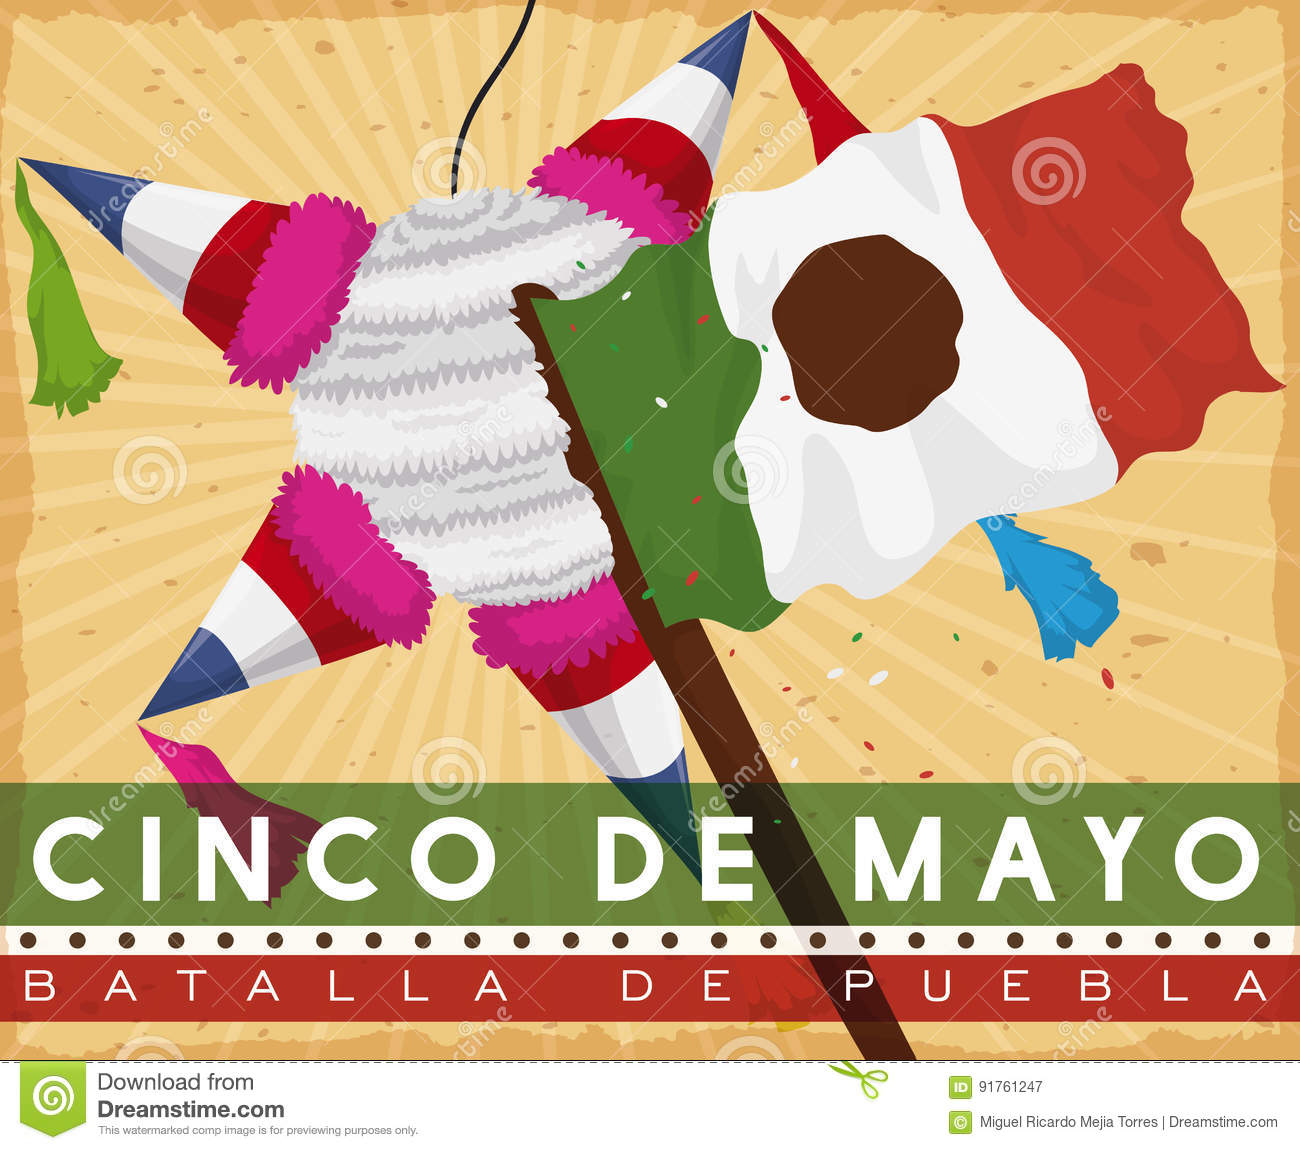 French Pinata Hit By Mexican Flag Commemorating Battle Of